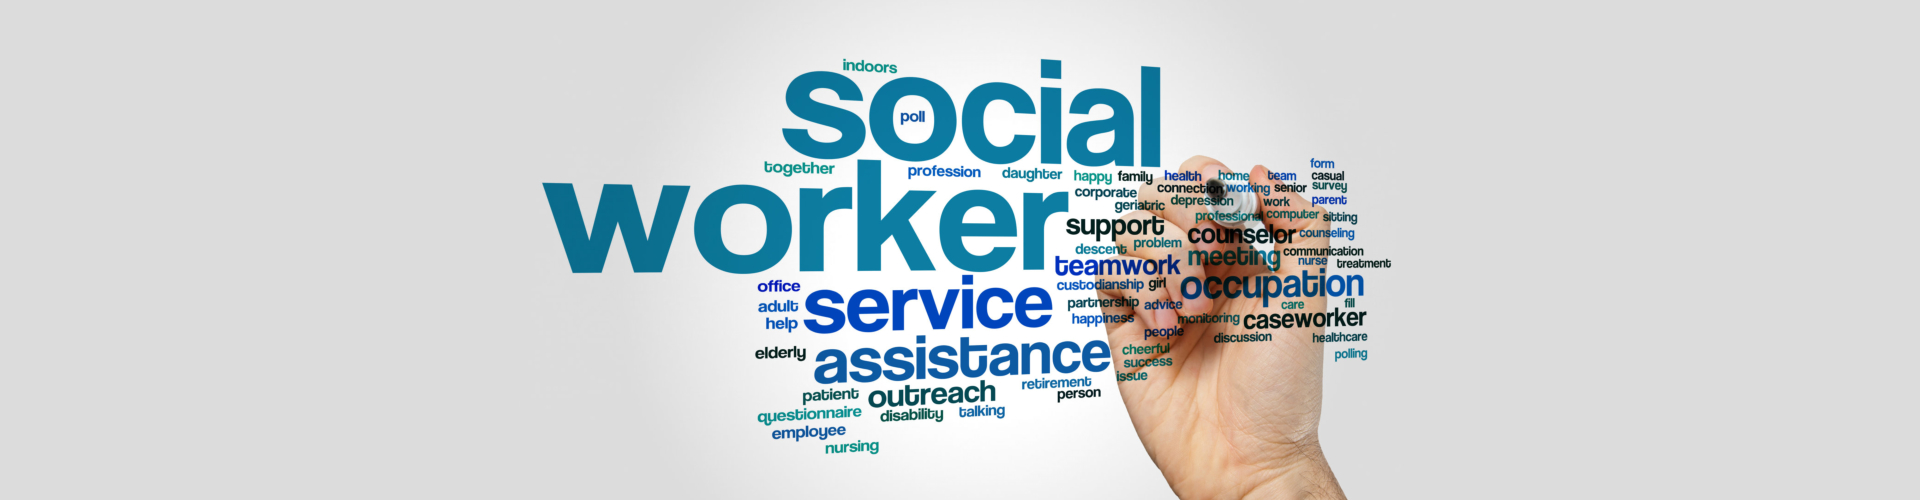 Social worker word cloud